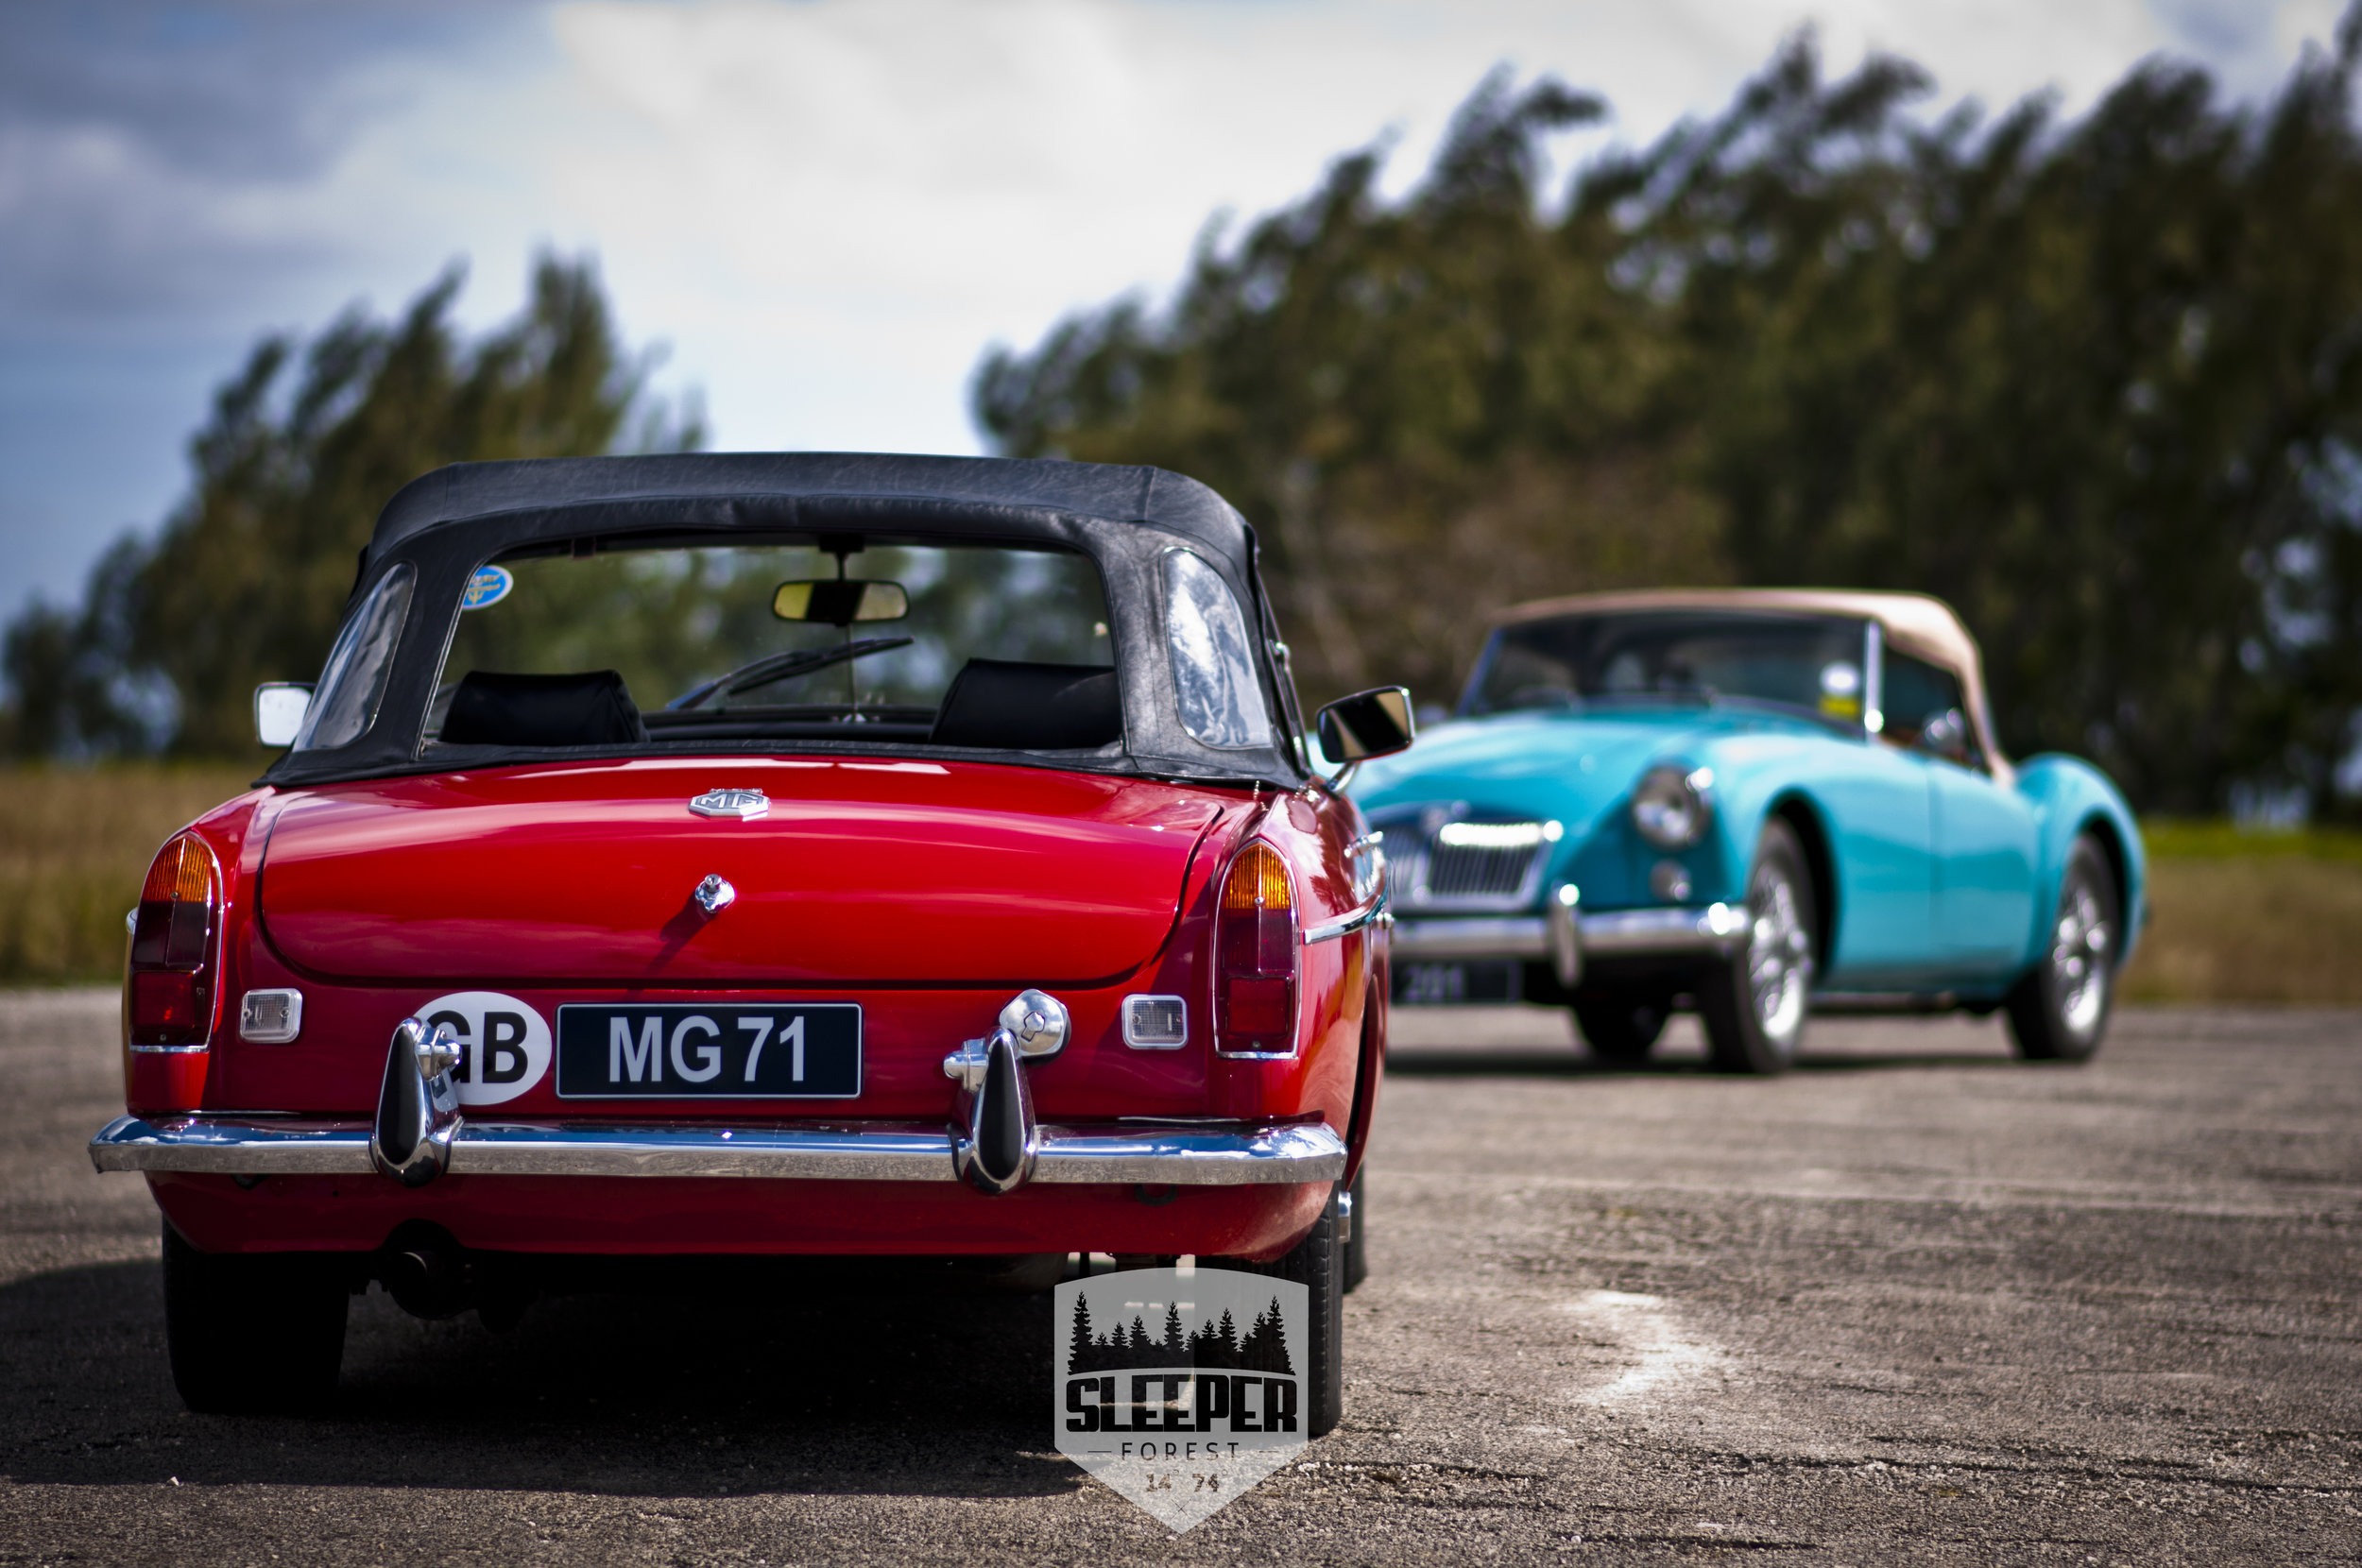 Their styling is actually quite reminiscent of 1960s American muscle cars vs the MGA.